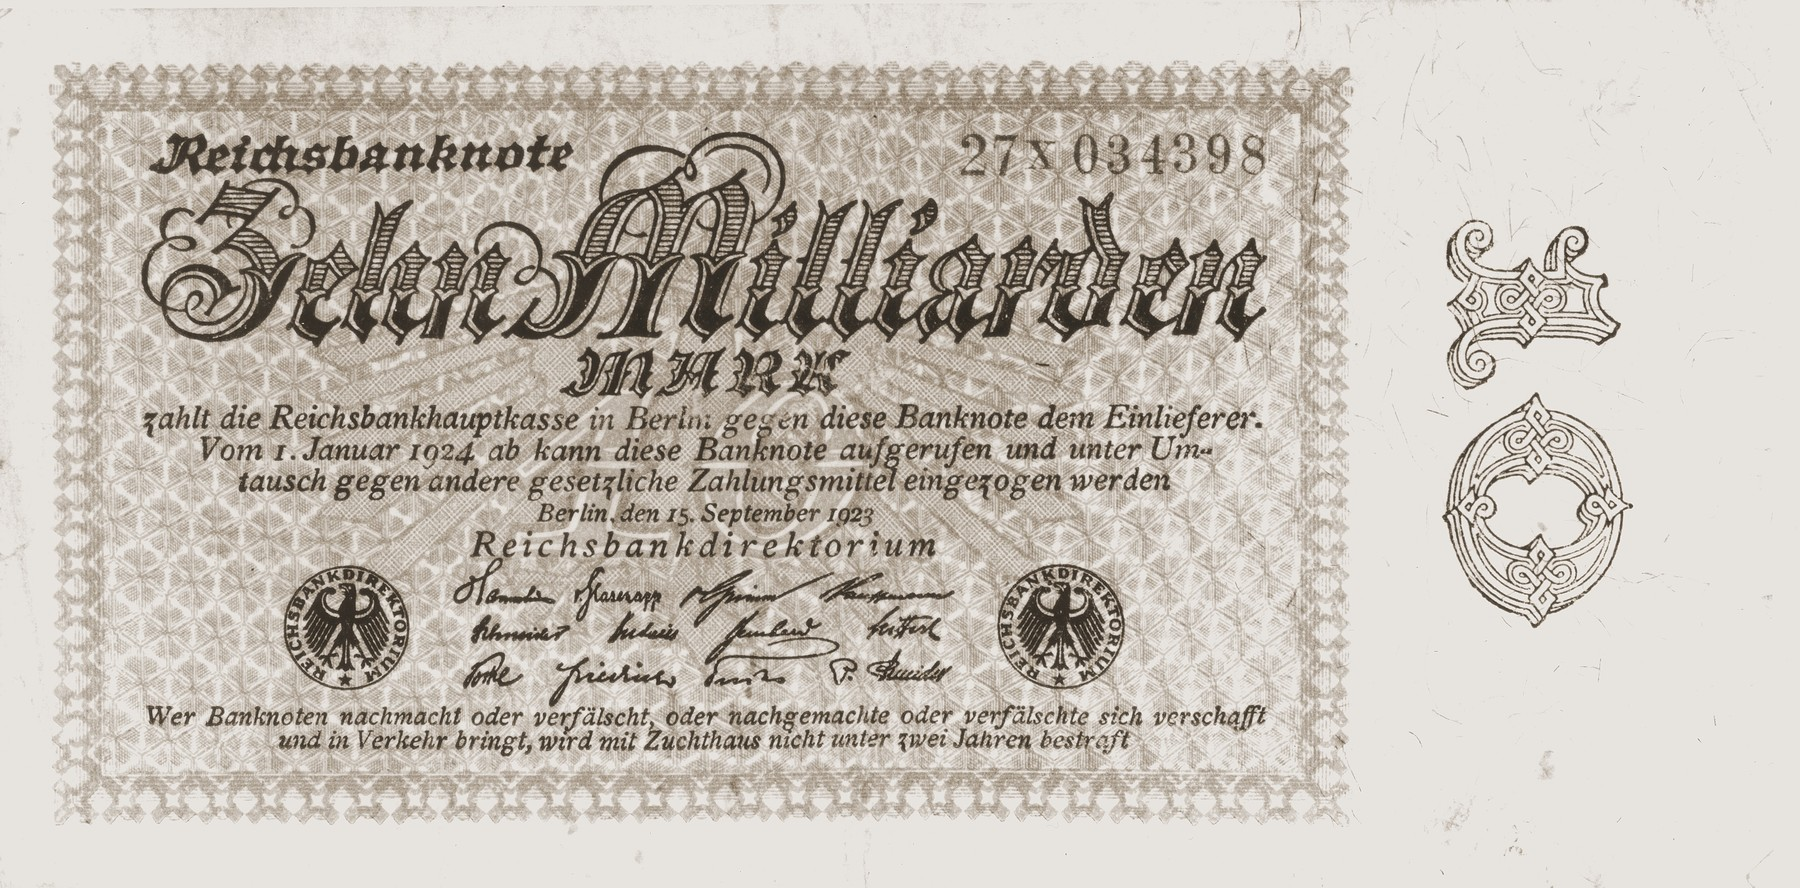 A ten million mark Reichsbanknote [paper currency] that was issued by the German national bank during the height of the inflation in 1923.